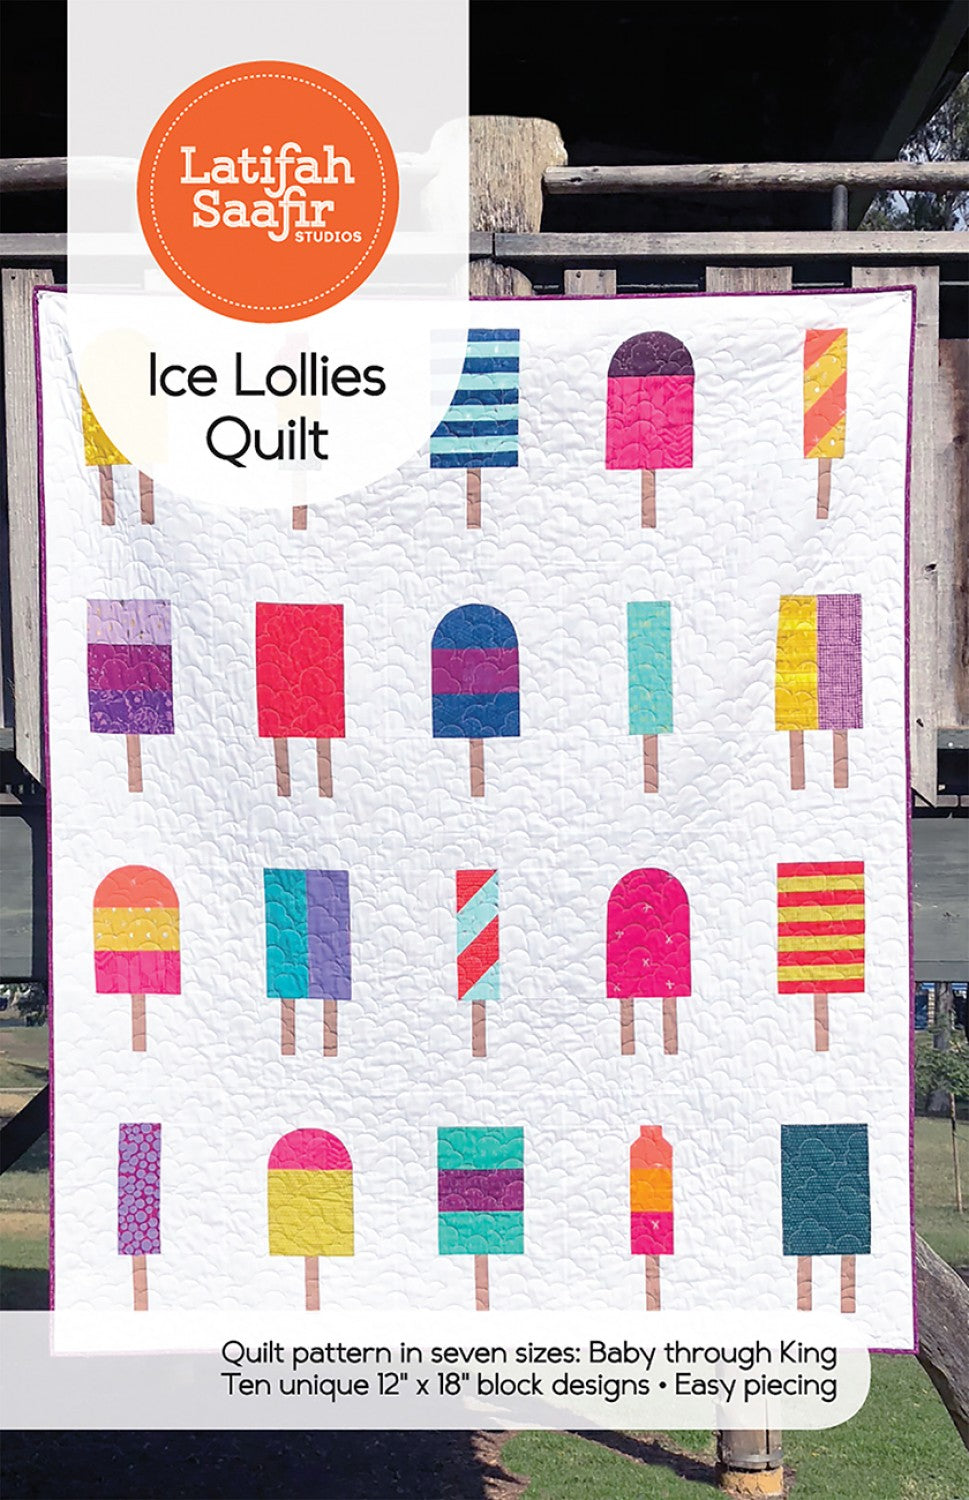 Latifah Saafir Studios: Ice Lollies Quilt - LSS00018